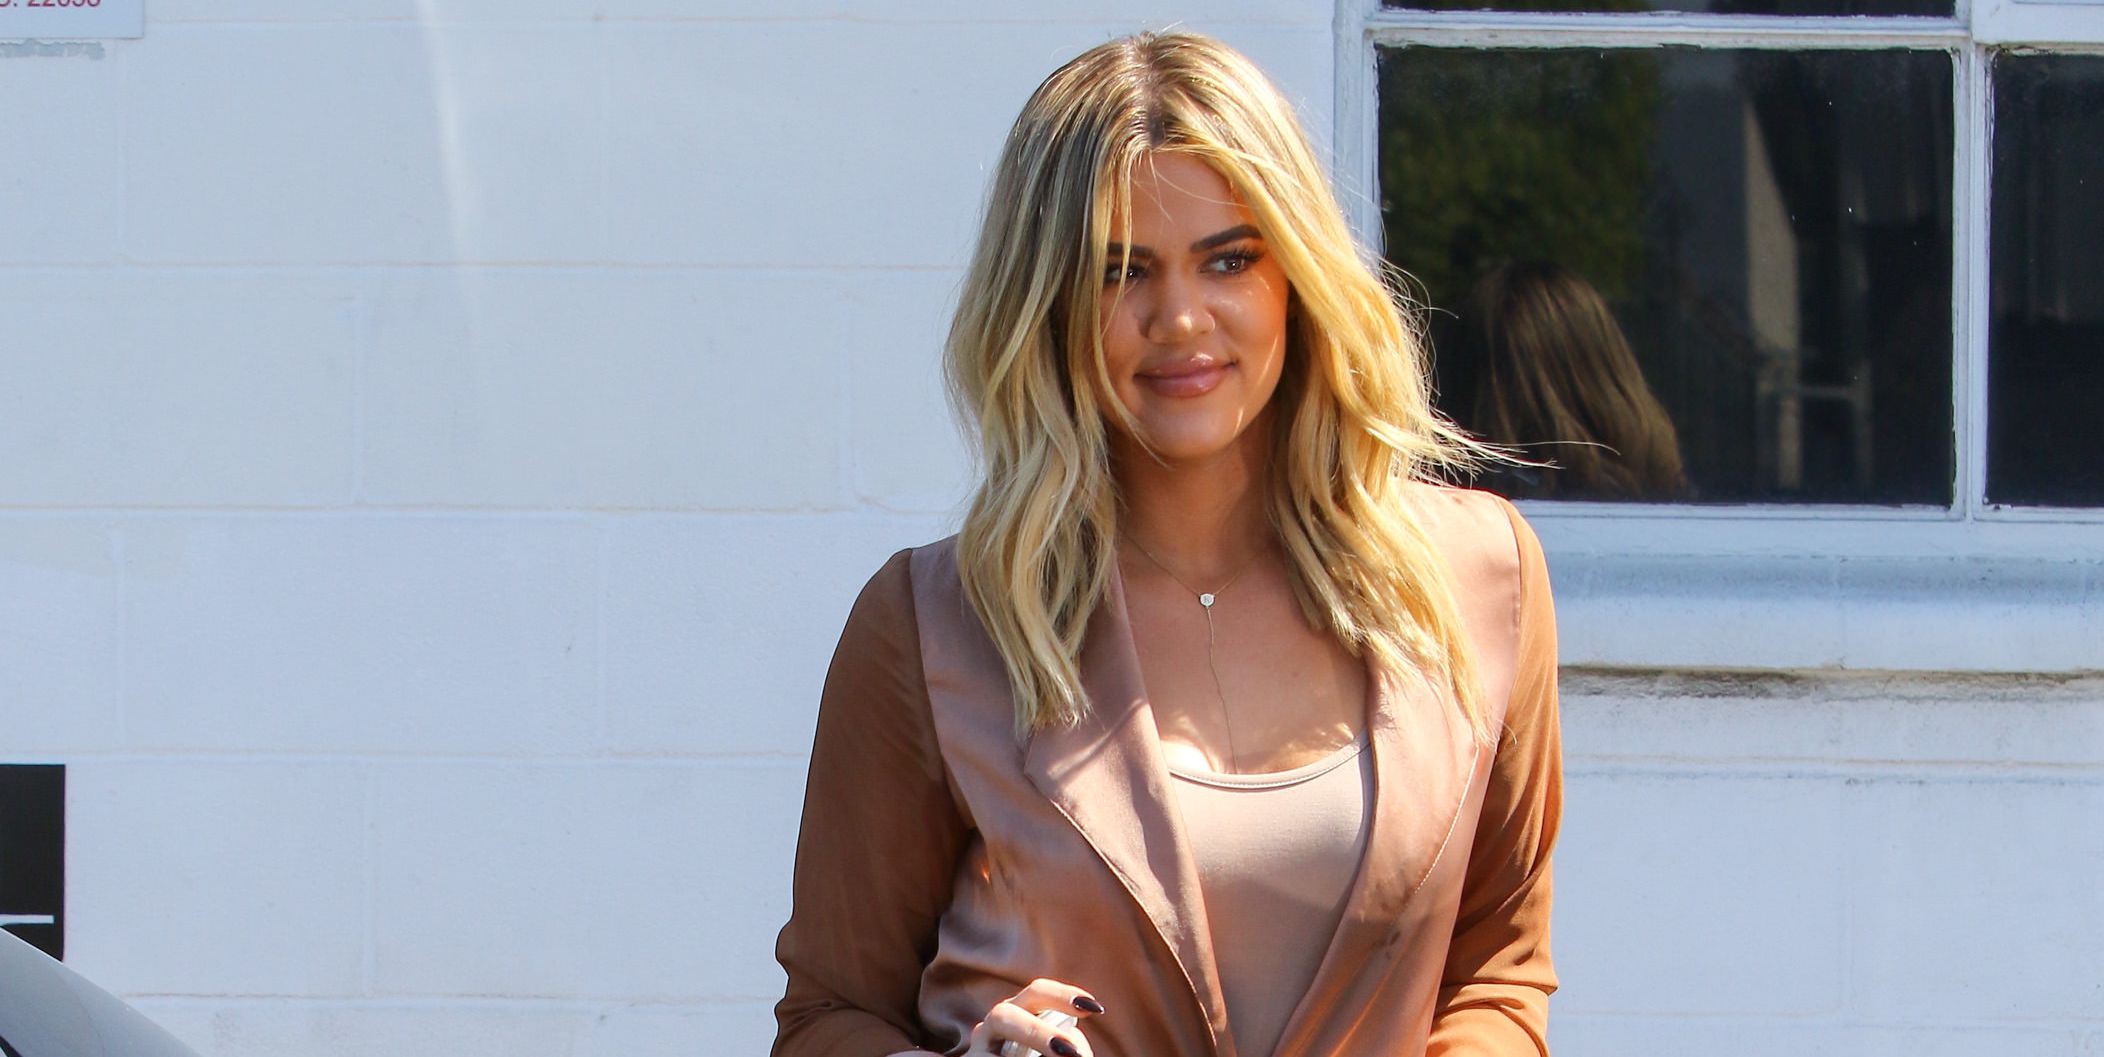 """Khloé Kardashian Is Pissed About Speculation Over Her """"Tremendous Amount"""" of Weight Loss"""